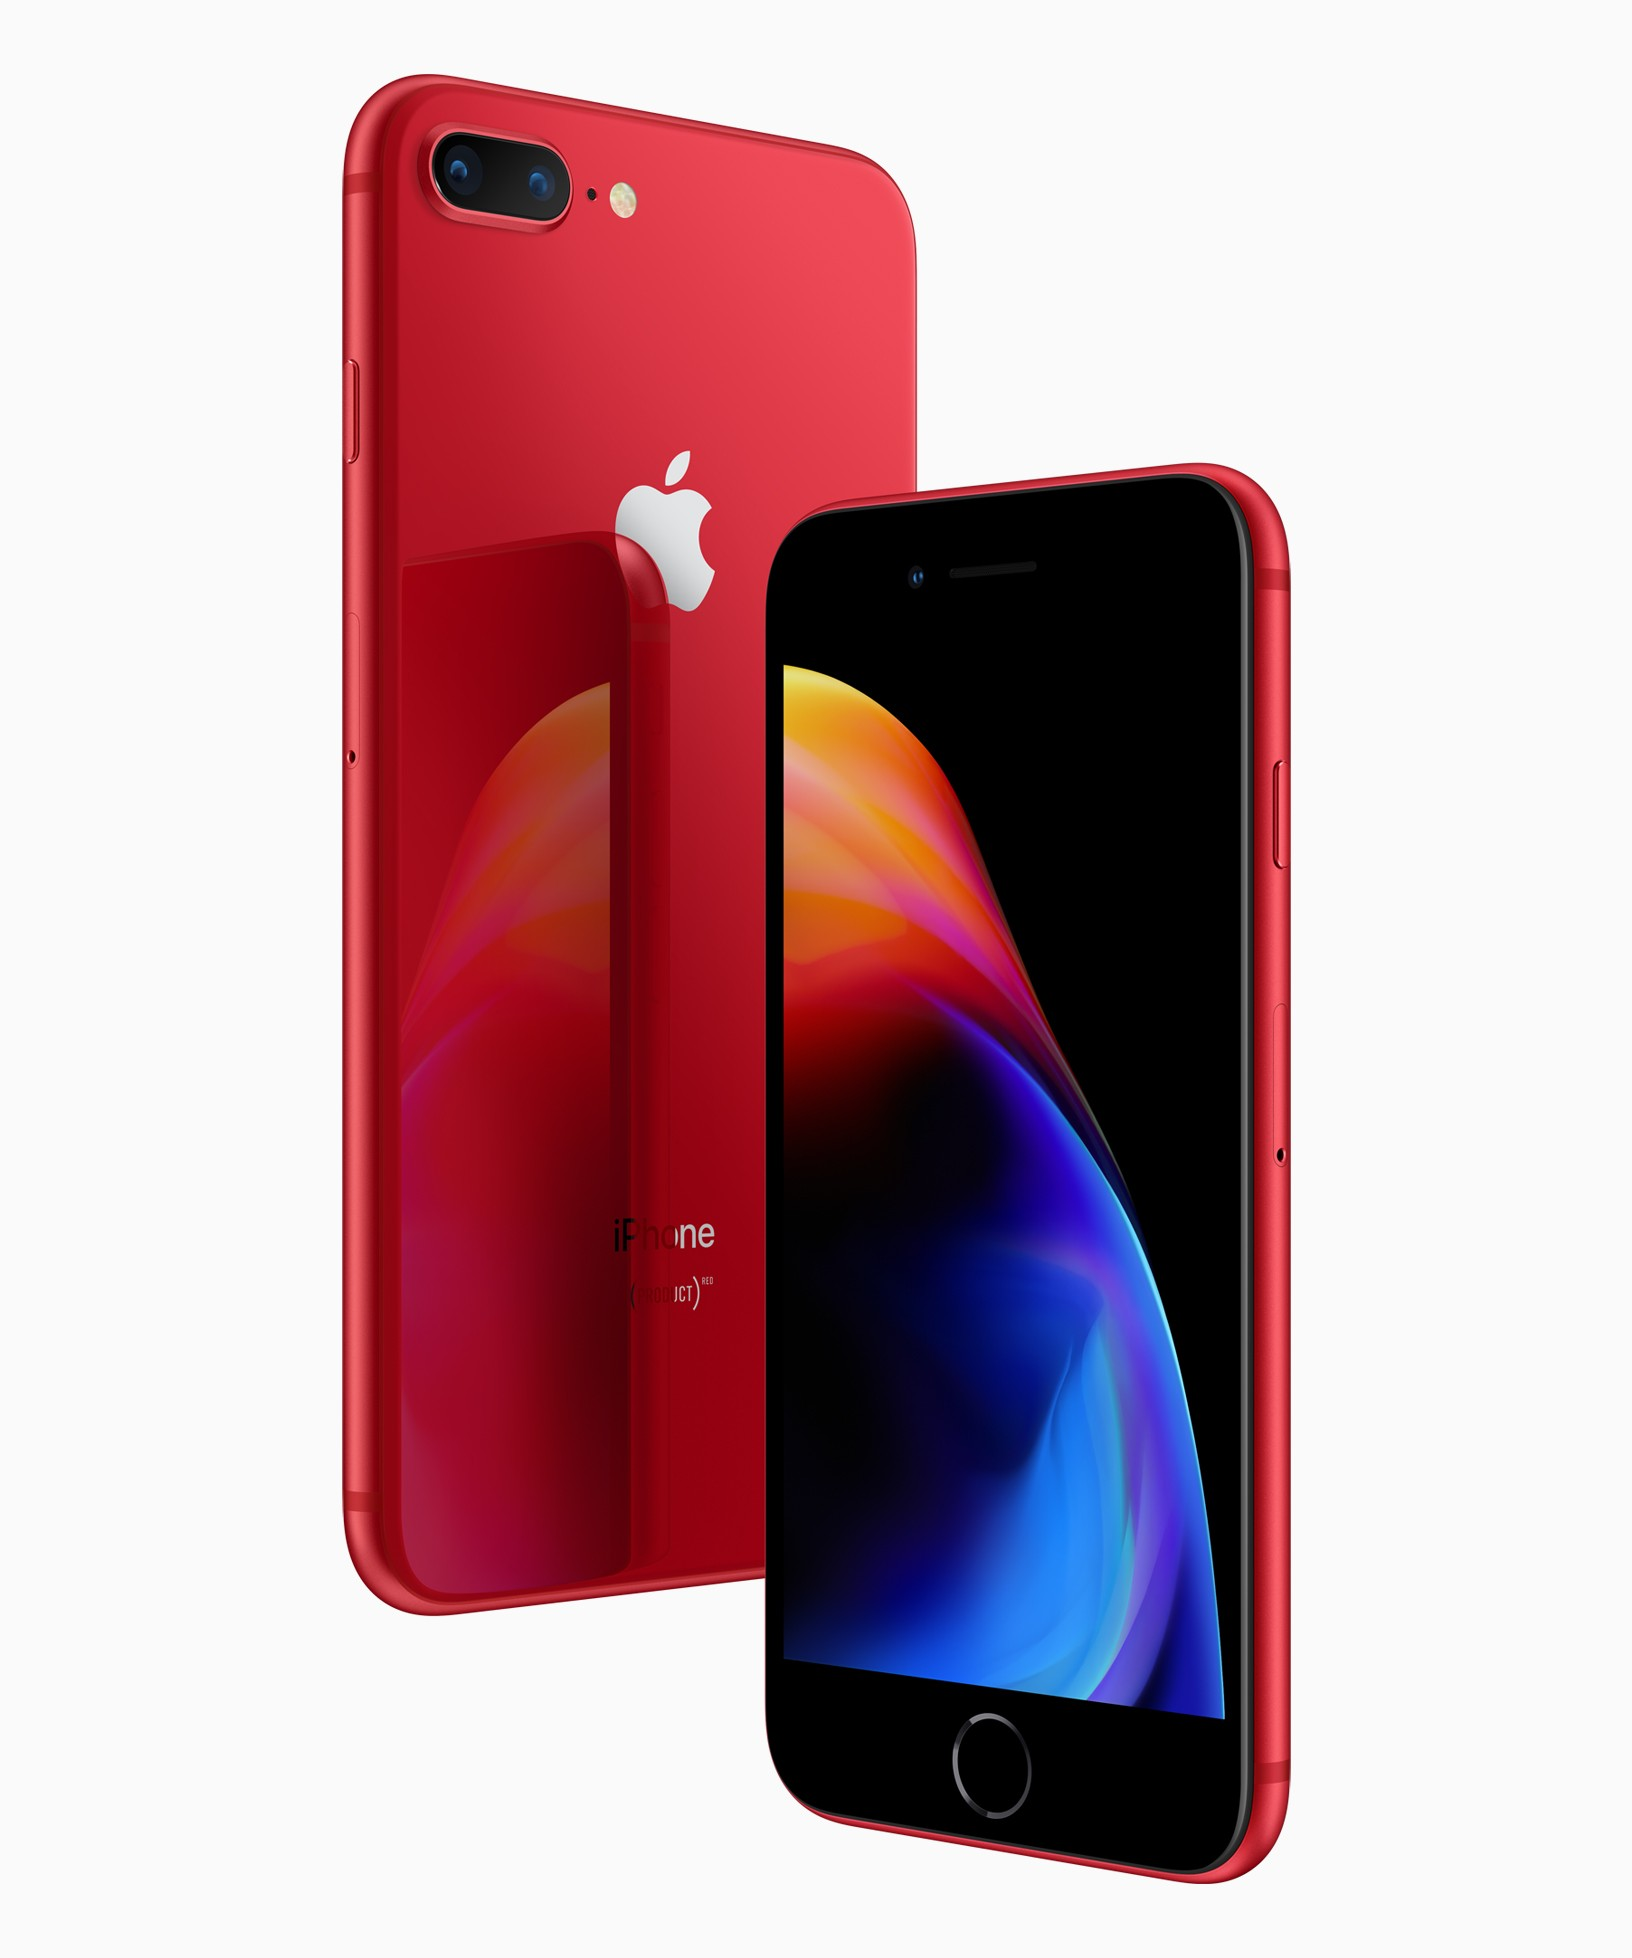 IPhone Xr release - The hidden feature Apple didn't tell you about